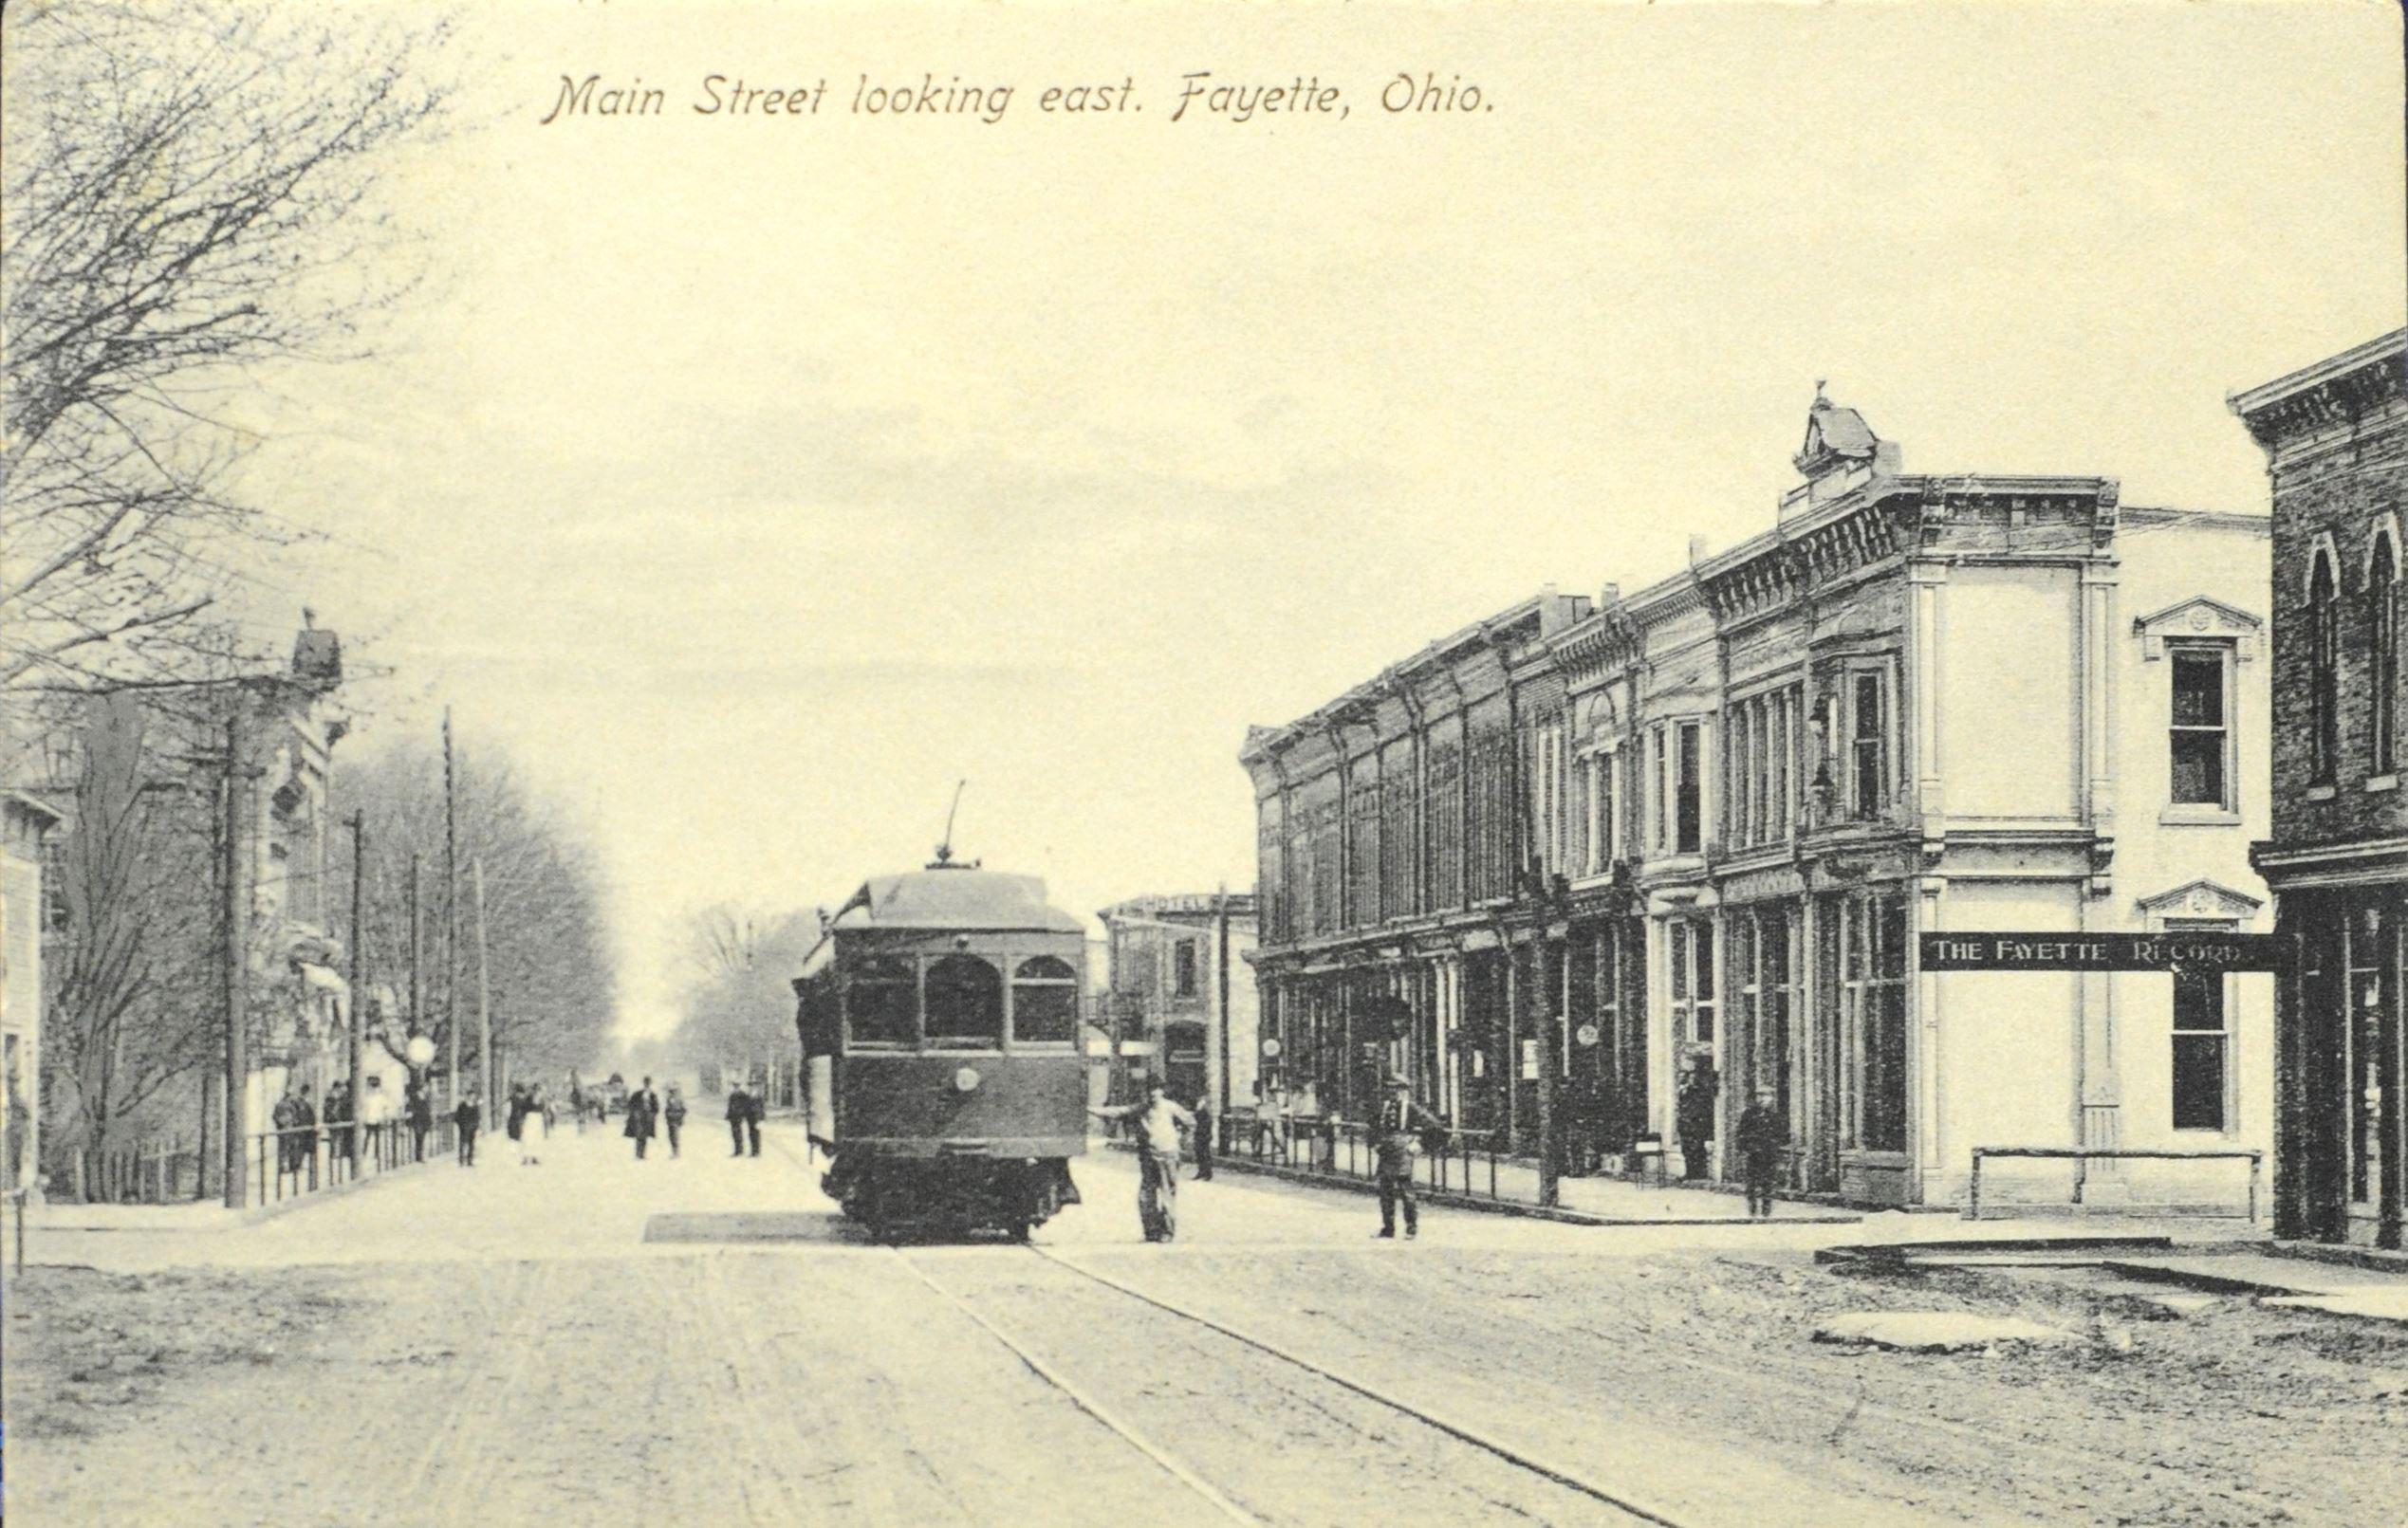 Main Street looking East - Circa 1910